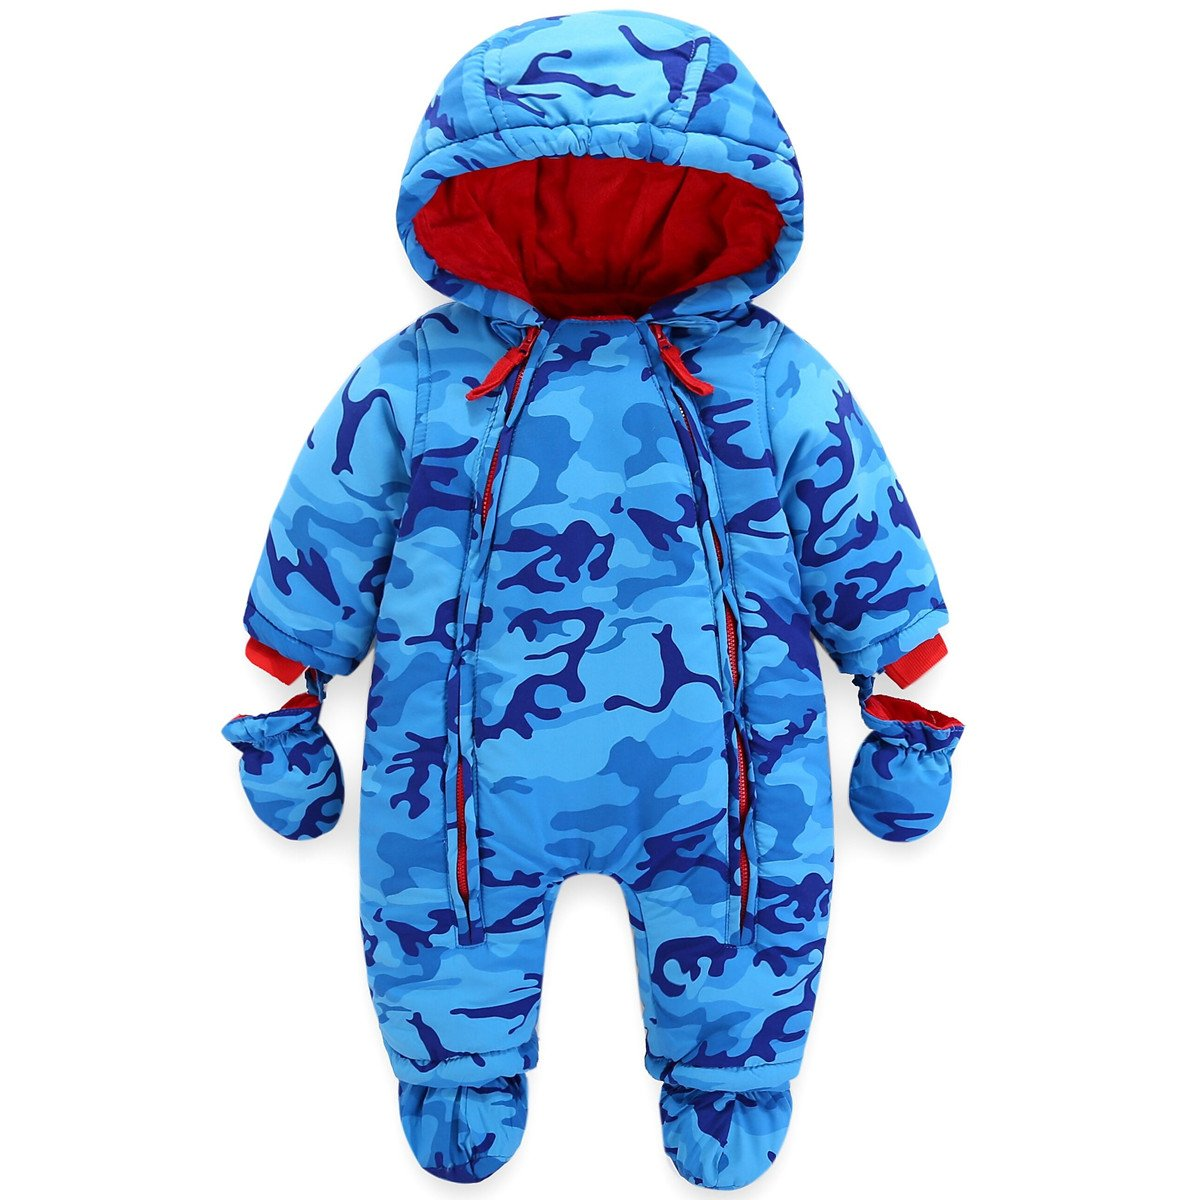 JiAmy Baby Winter Hooded Romper Snowsuit with Gloves Booties Cotton Jumpsuit Outfits for 3-24 Months